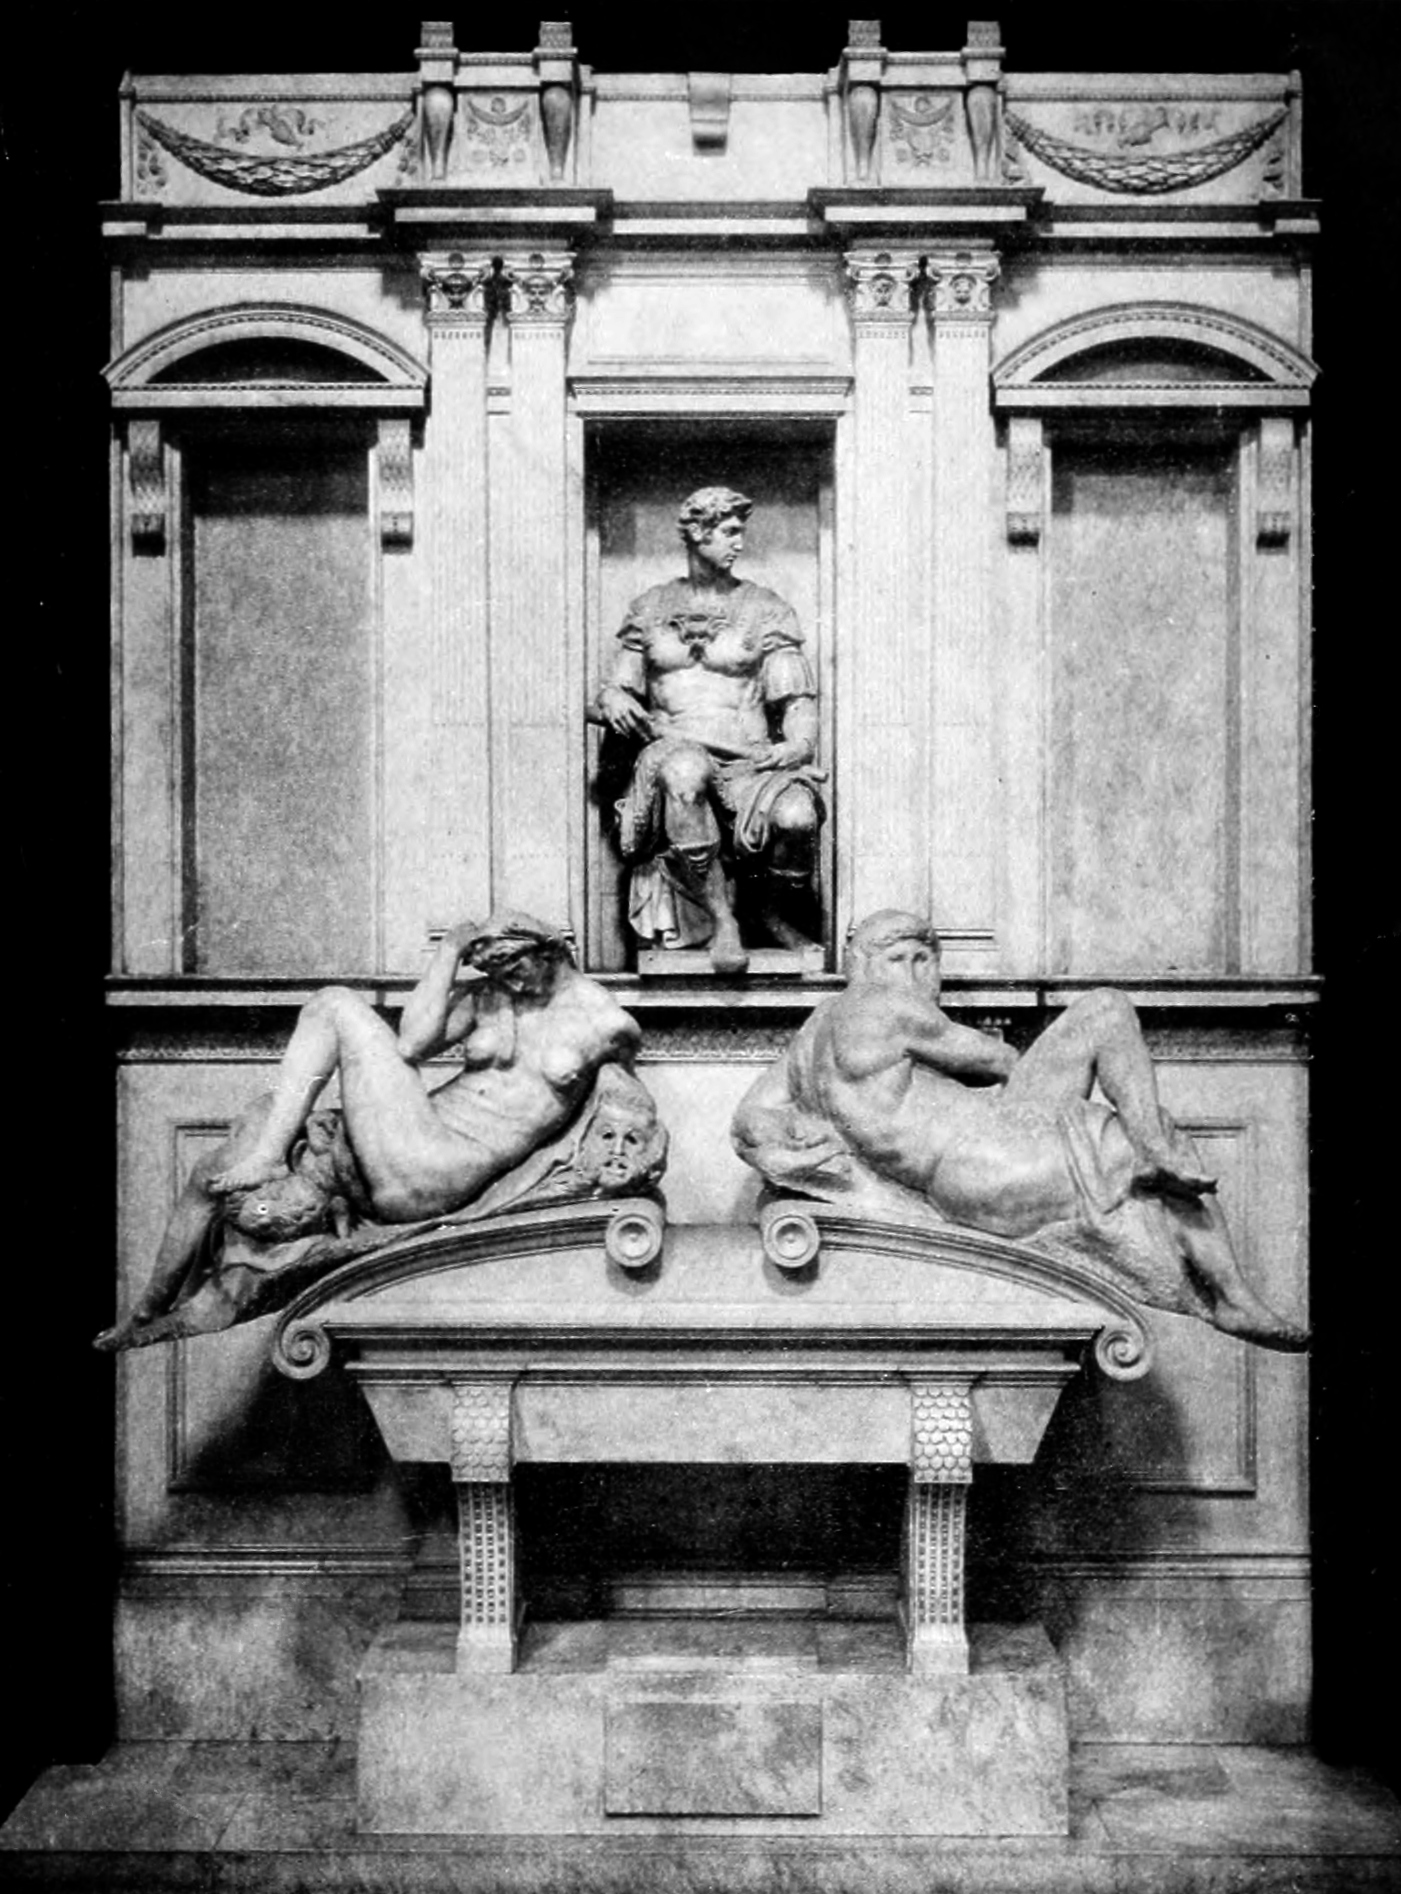 Michelangelo, Tomb of Giuliano di Lorenzo de' Medici with Night and Day, 1533, Florence, Italy